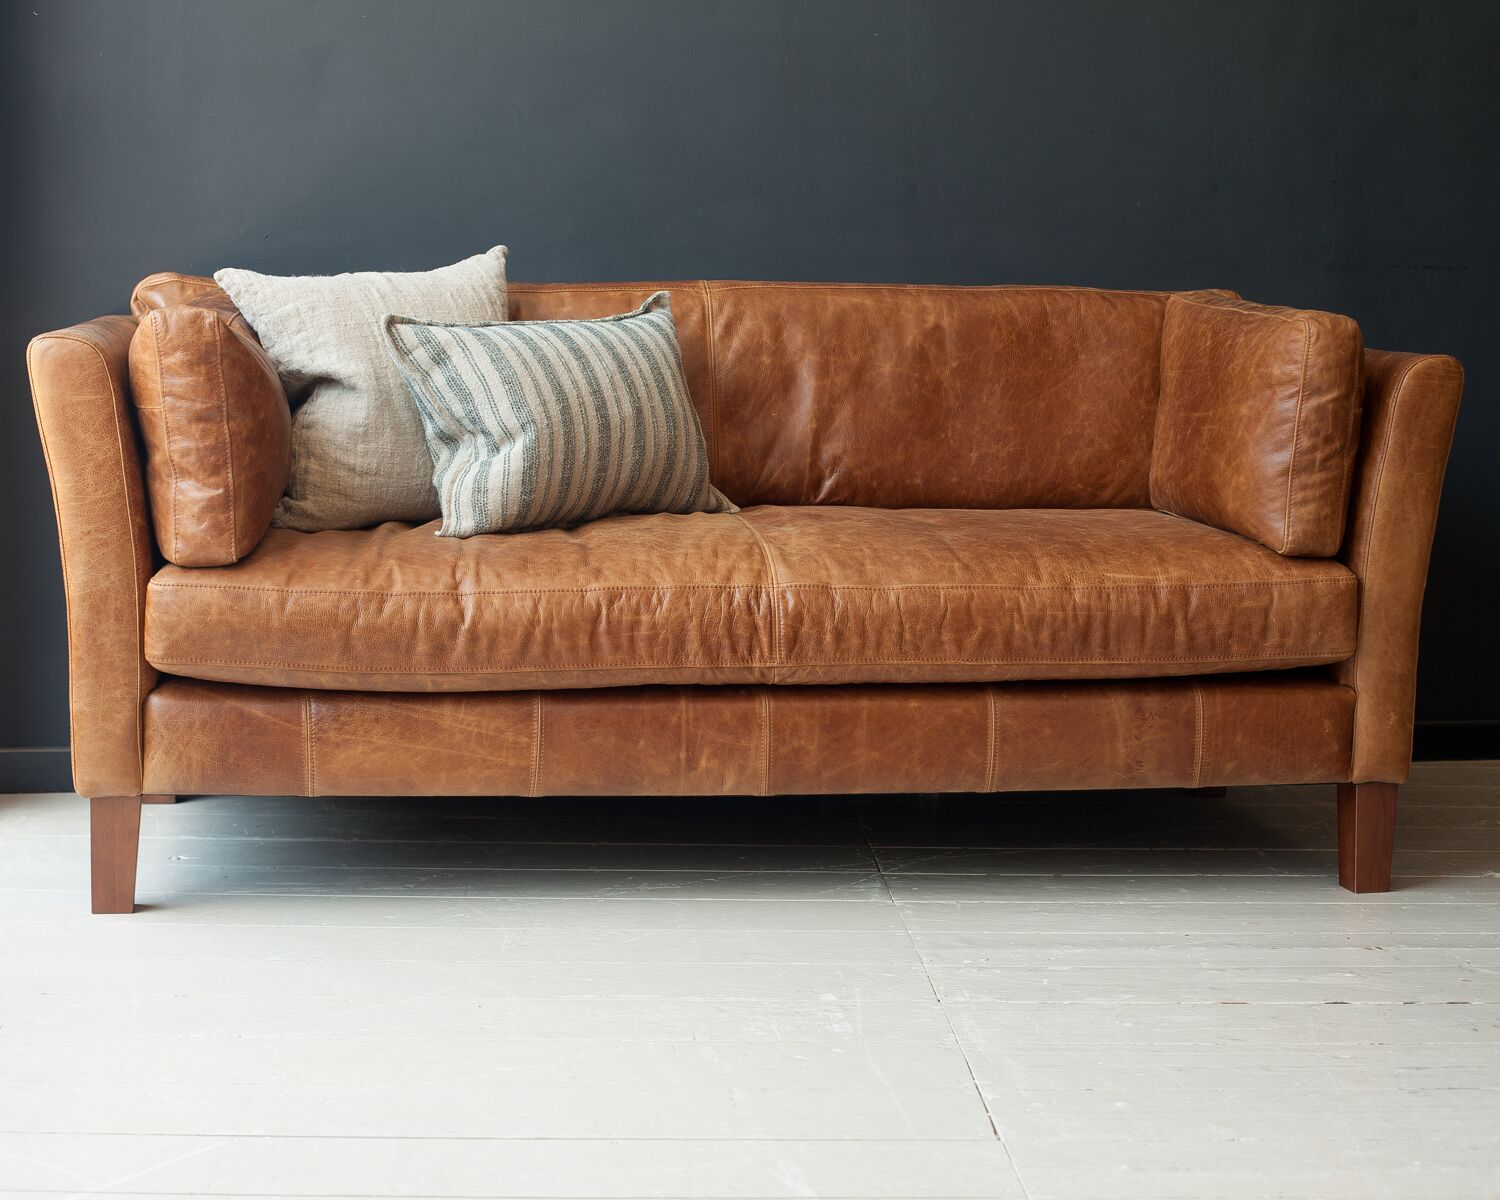 comfortable leather couches. Our Croft Italian Leather Sofa. It Is Versatile, Stylish And Comfortable. As With Most Good Quality Leathers Ages Very Well Extremely Wipeable. Comfortable Couches D